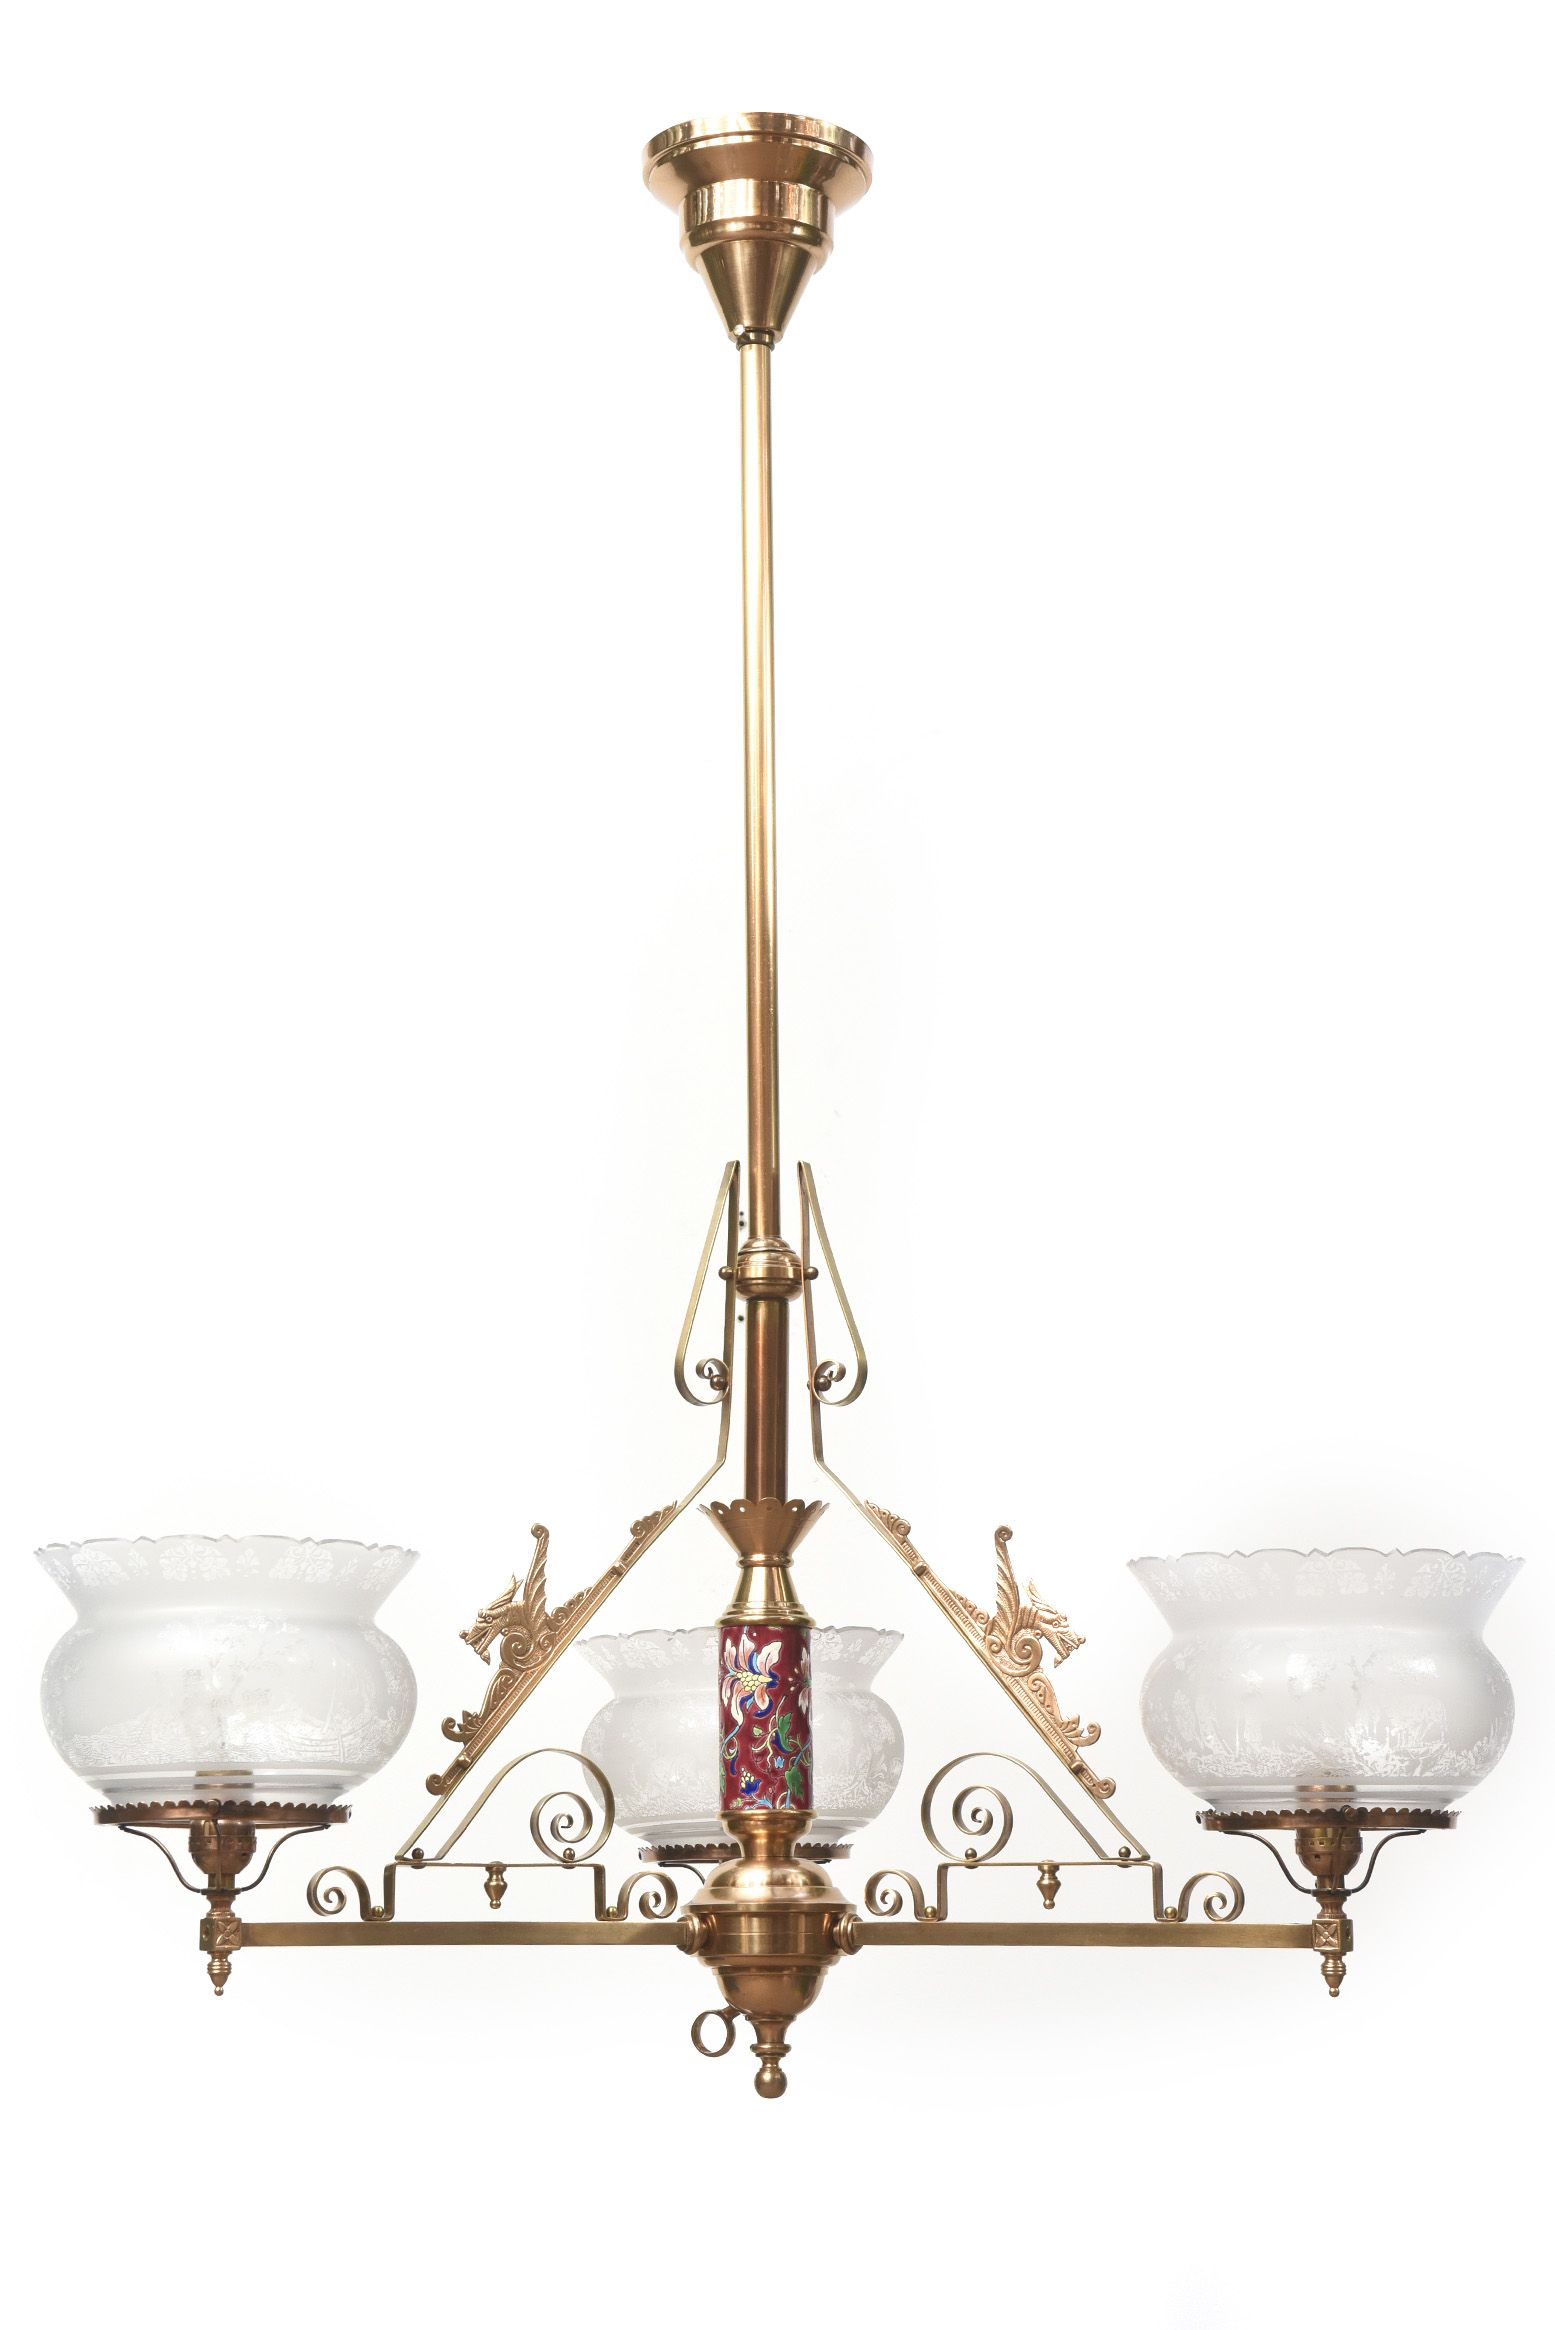 Three Light Aesthetic Movement Chandelier with Longwy and Dragons